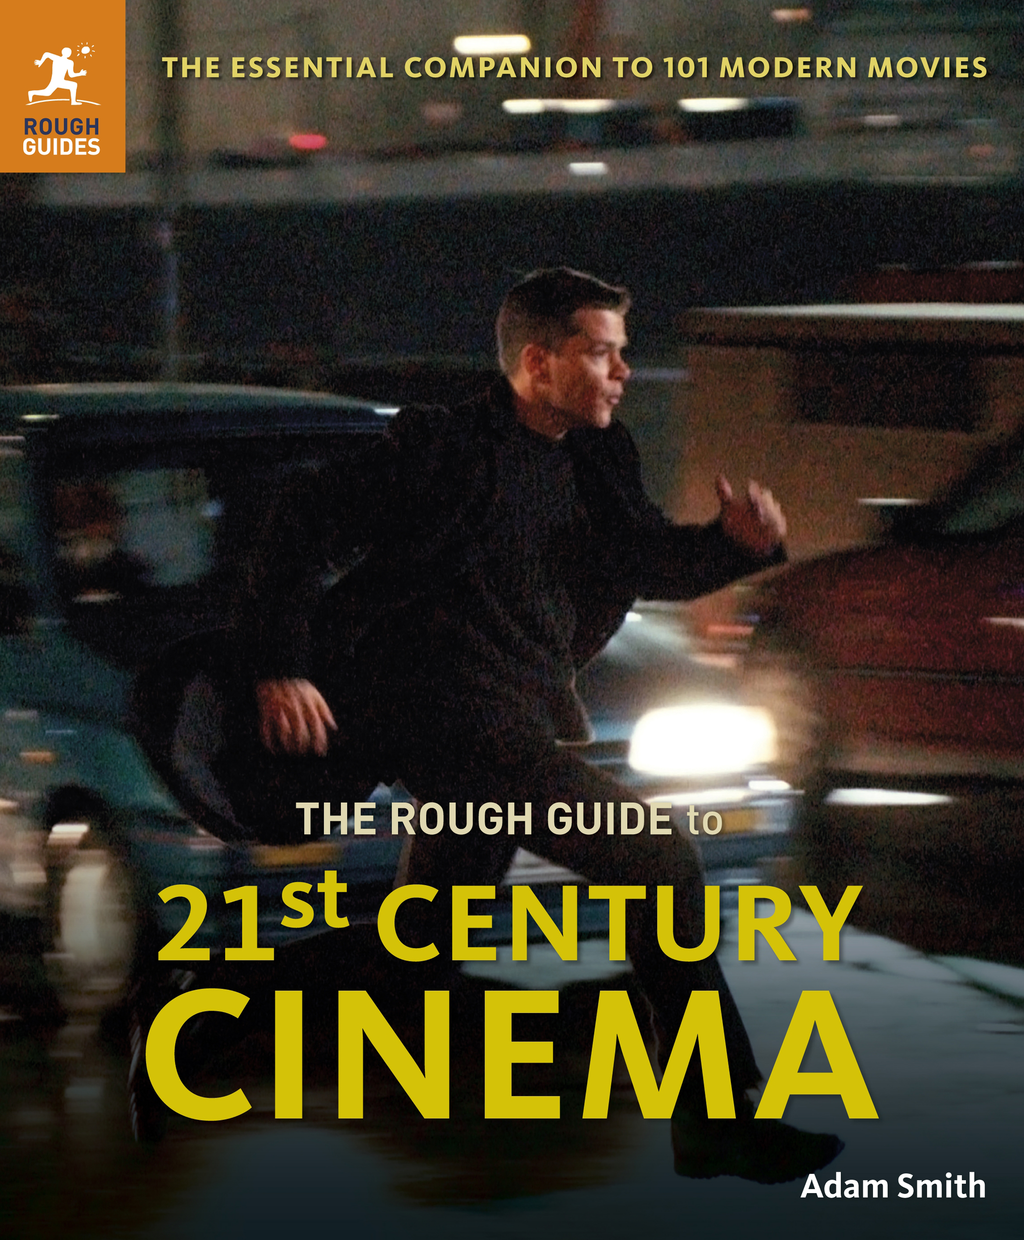 The Rough Guide to 21st Century Cinema The Essential Companion to 101 Modern Movies